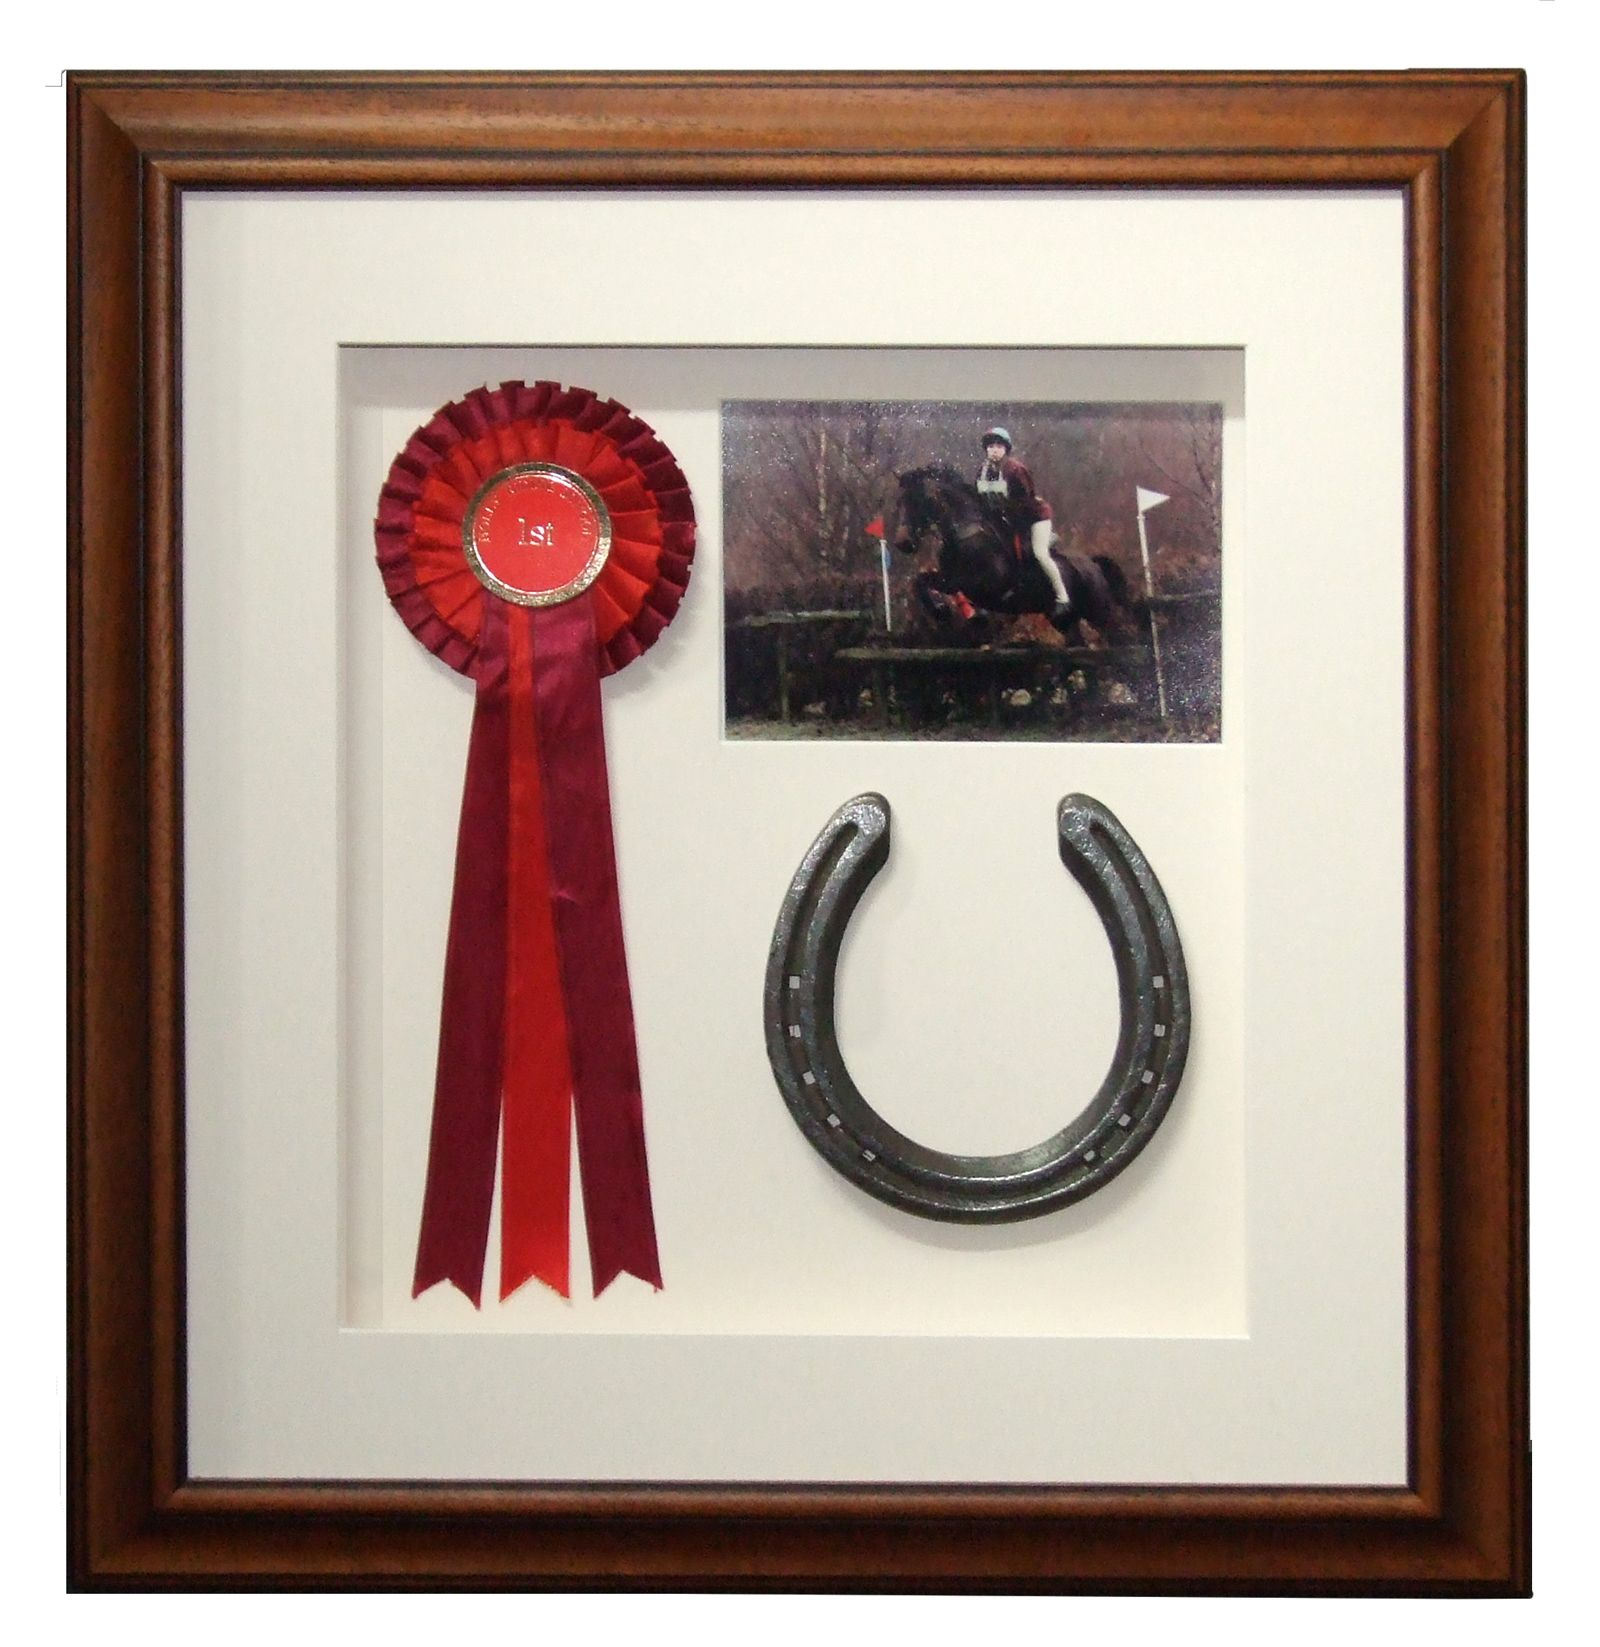 Framed items art printing photography and image digital equestrian style jeuxipadfo Gallery